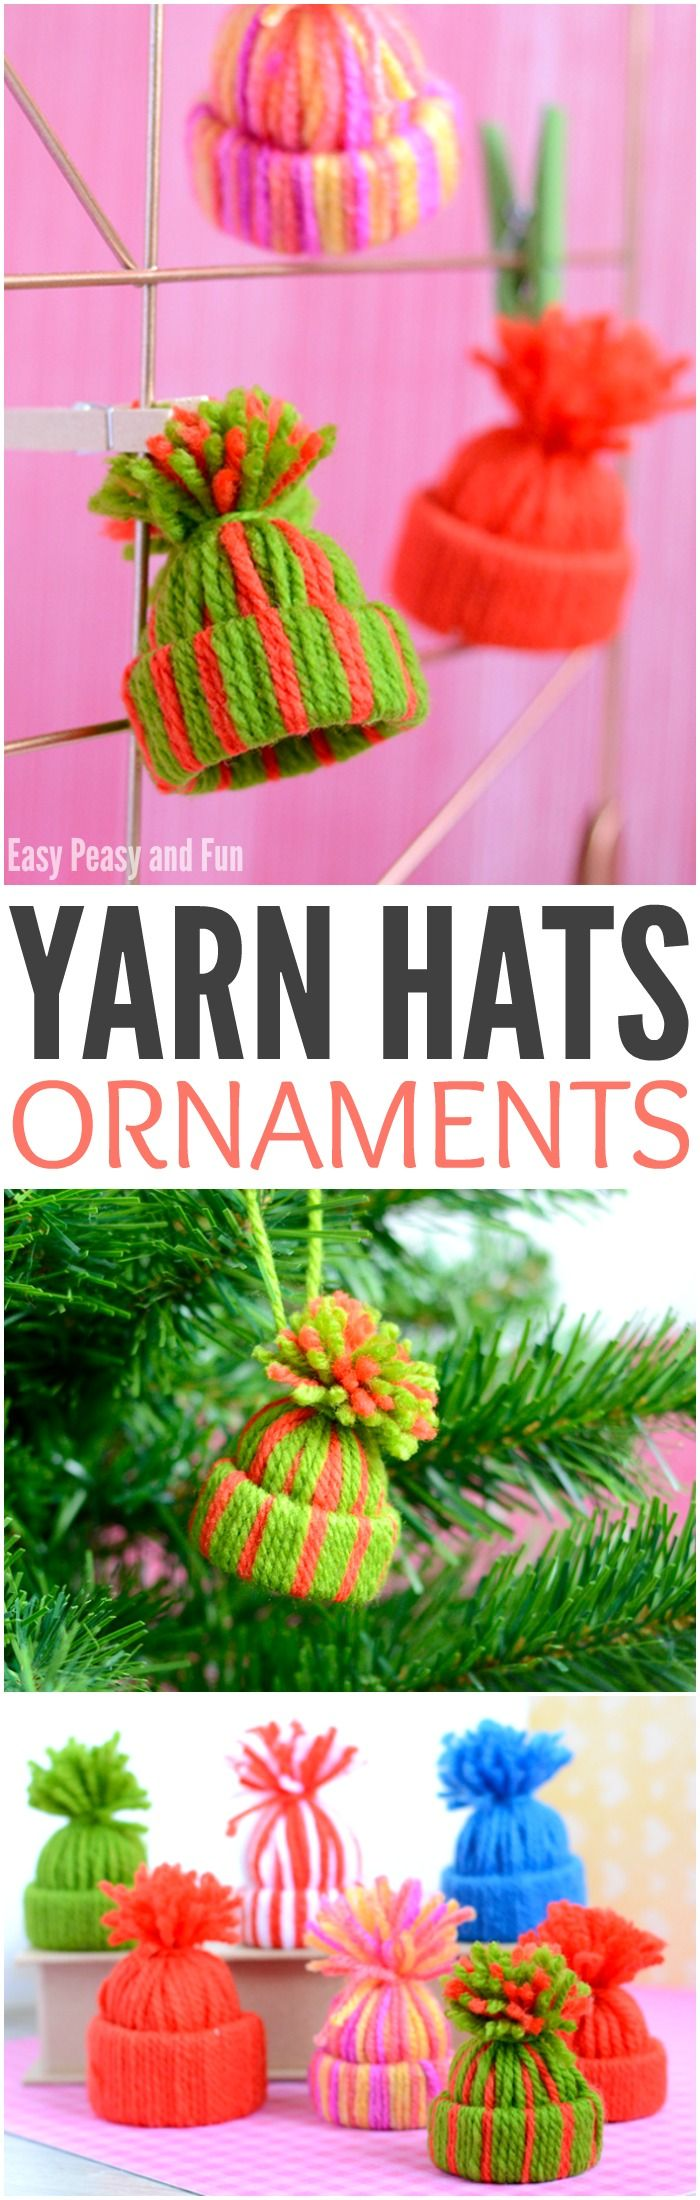 Cool Craft Ideas For Christmas Gifts Part - 45: Unique DIY Christmas Ornaments Crafts Ideas | ?Winter?Christmas? |  Pinterest | Christmas Ornament Crafts, DIY Christmas And Christmas Ornament